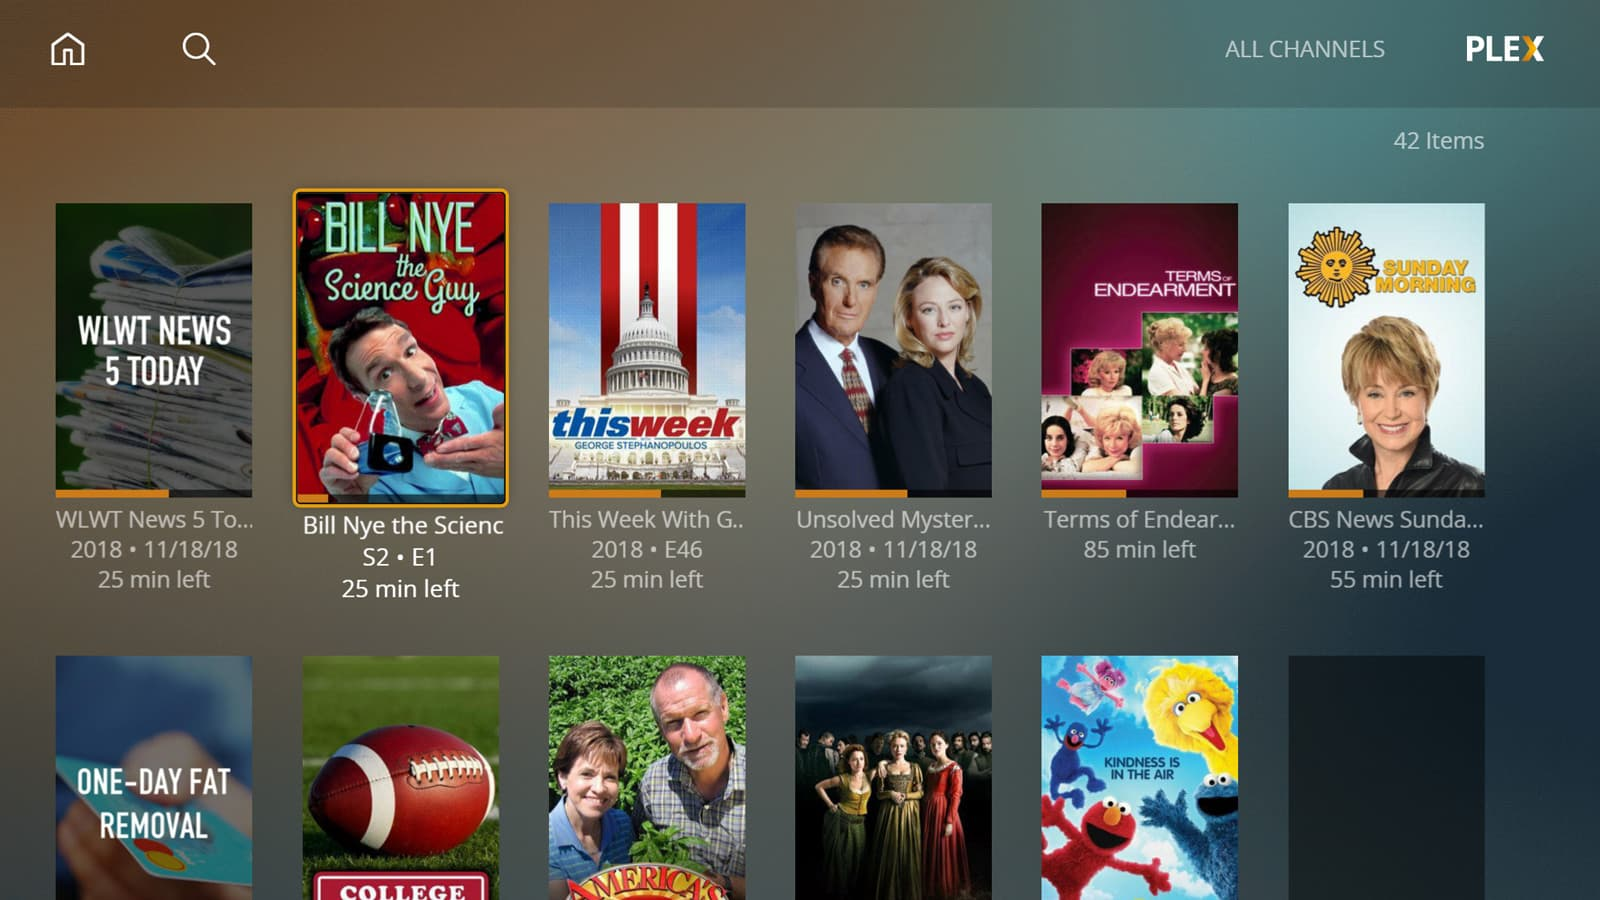 Plex Live TV & DVR: An Imperfect But Essential Tool for Cord Cutters